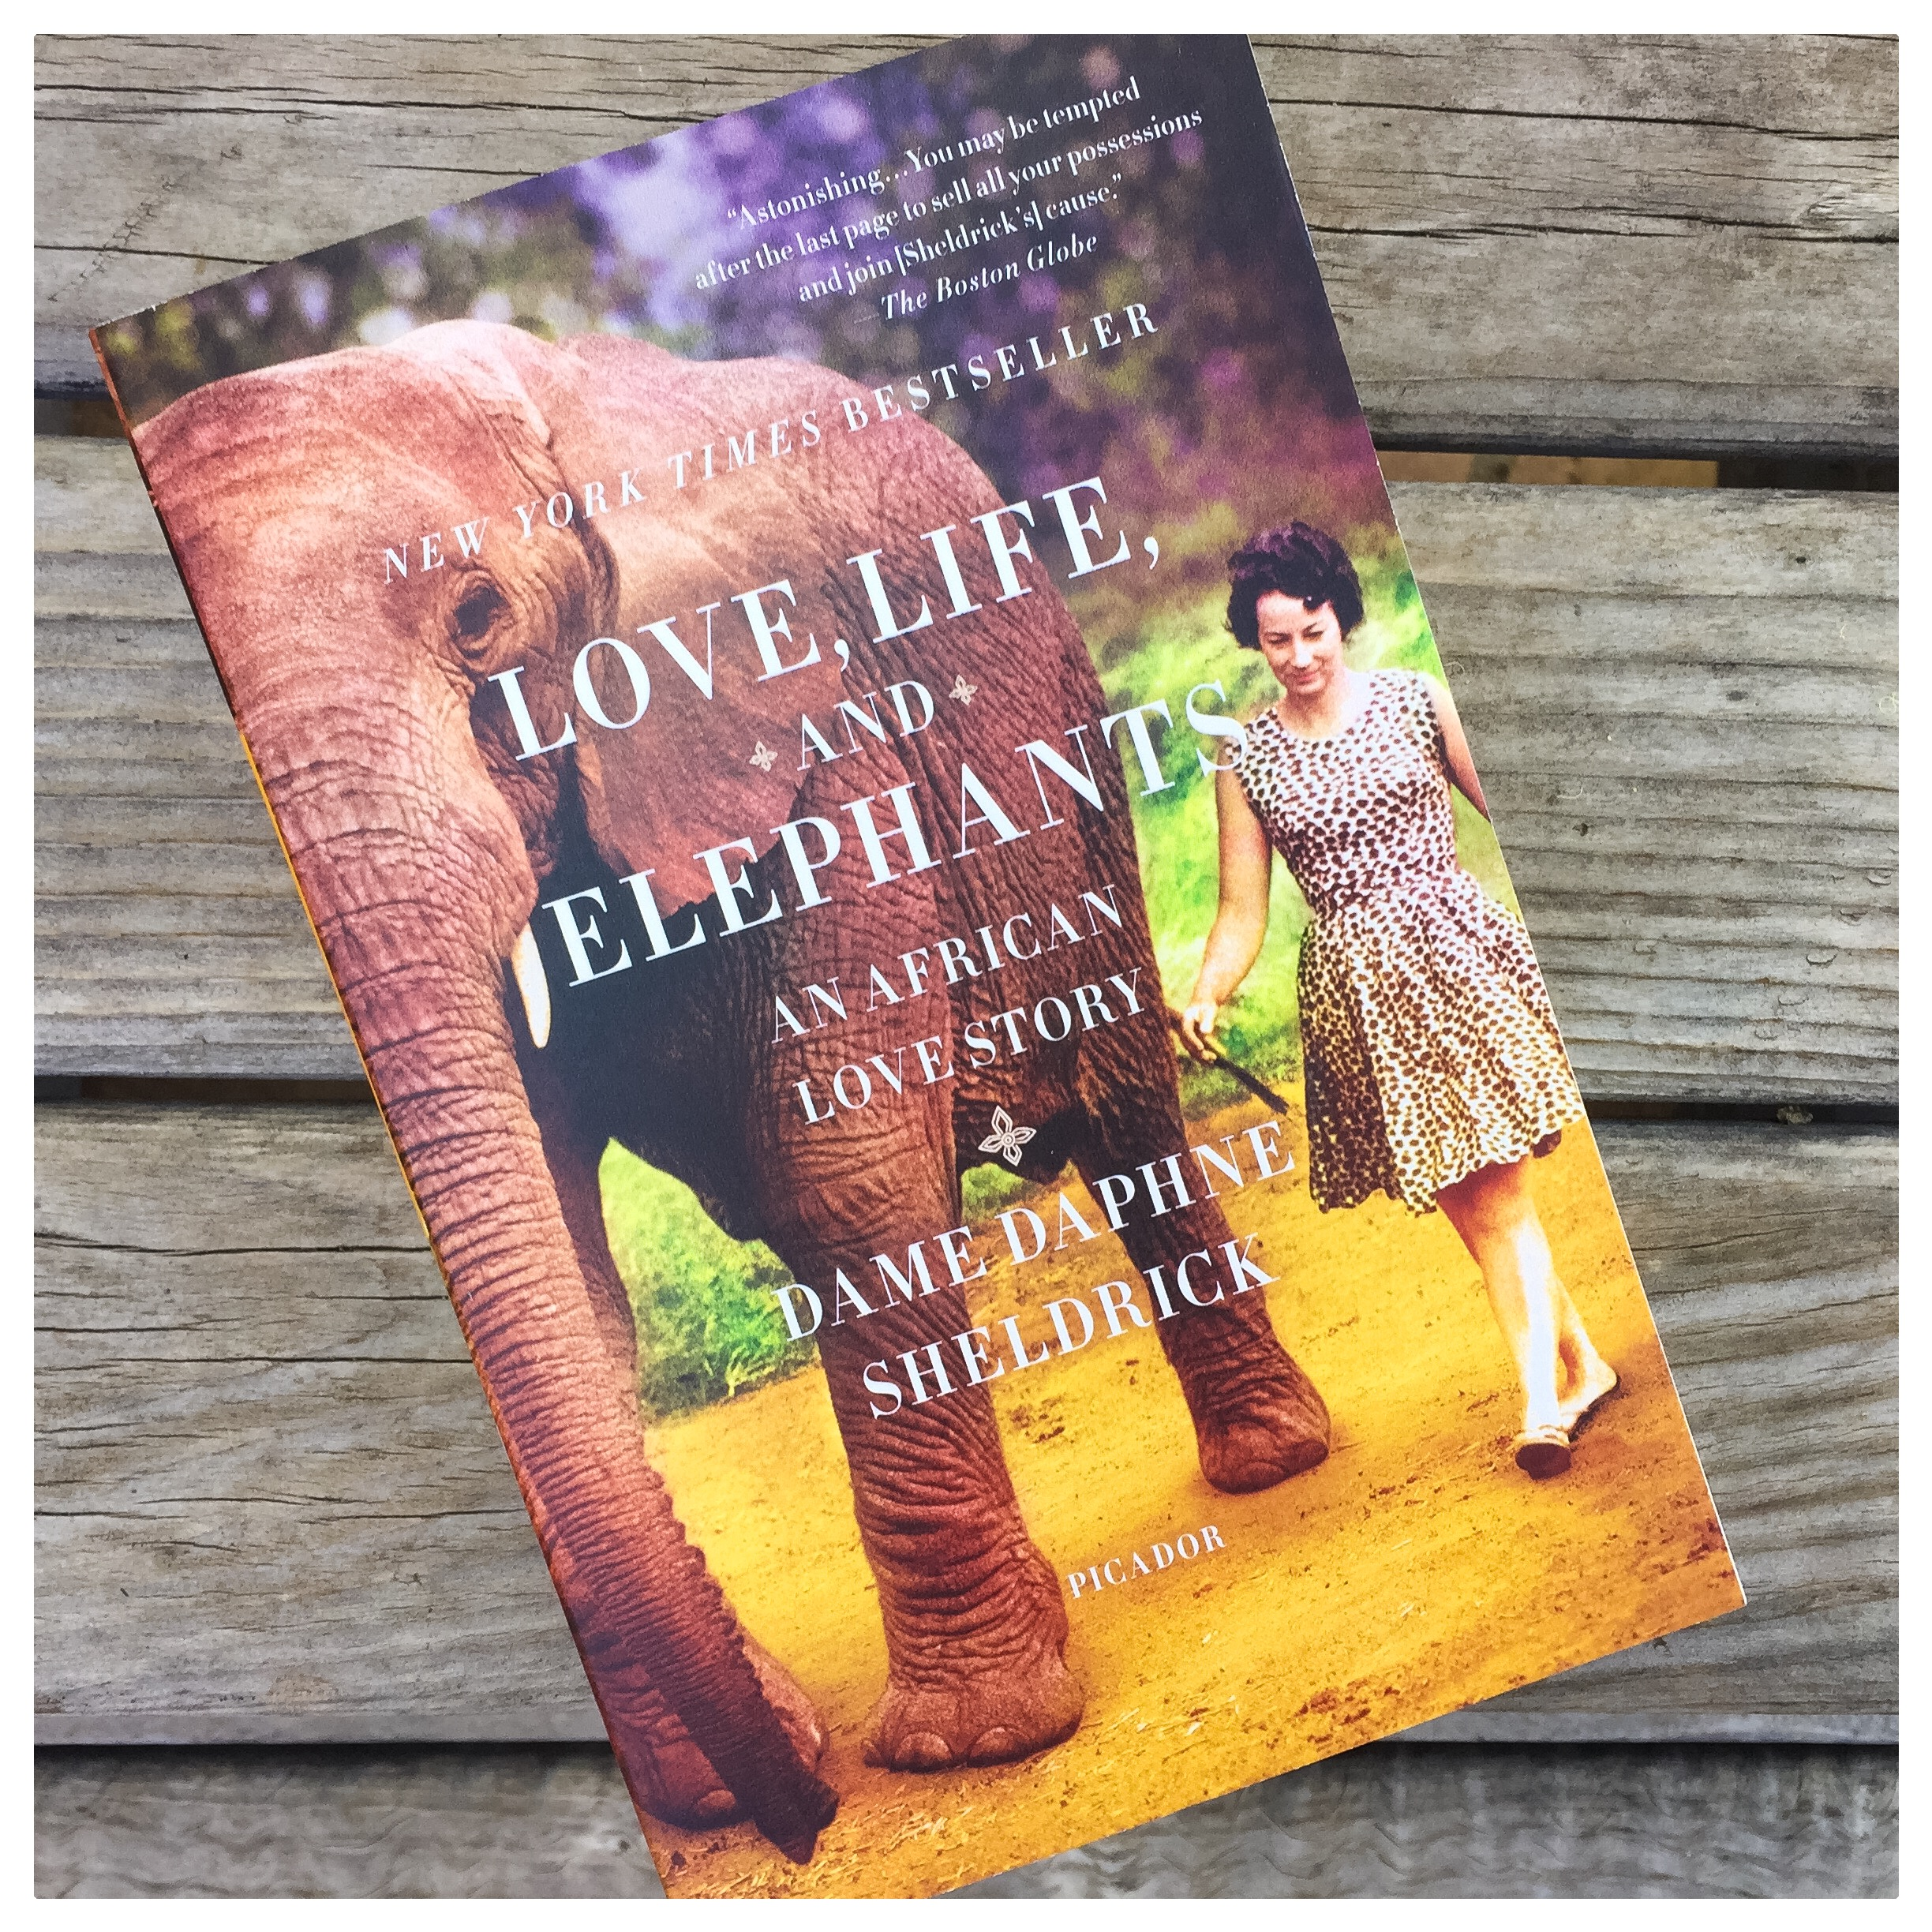 Elephants and Africa... just another book we hope you love as much as we do!